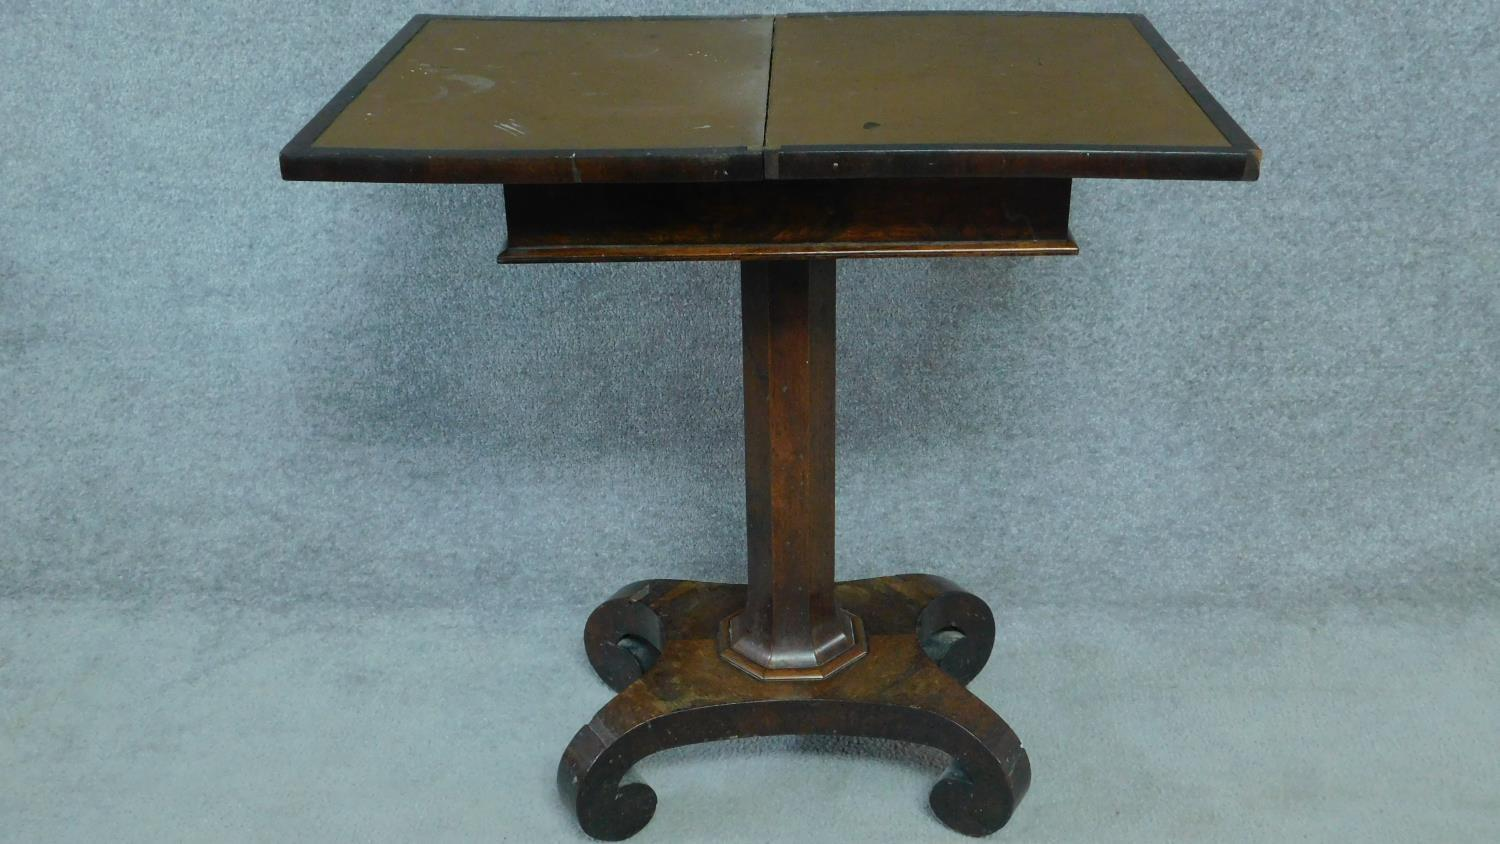 A William IV mahogany work table with fold over top enclosing interior compartment. H.73 W.71 D.46 - Image 3 of 4